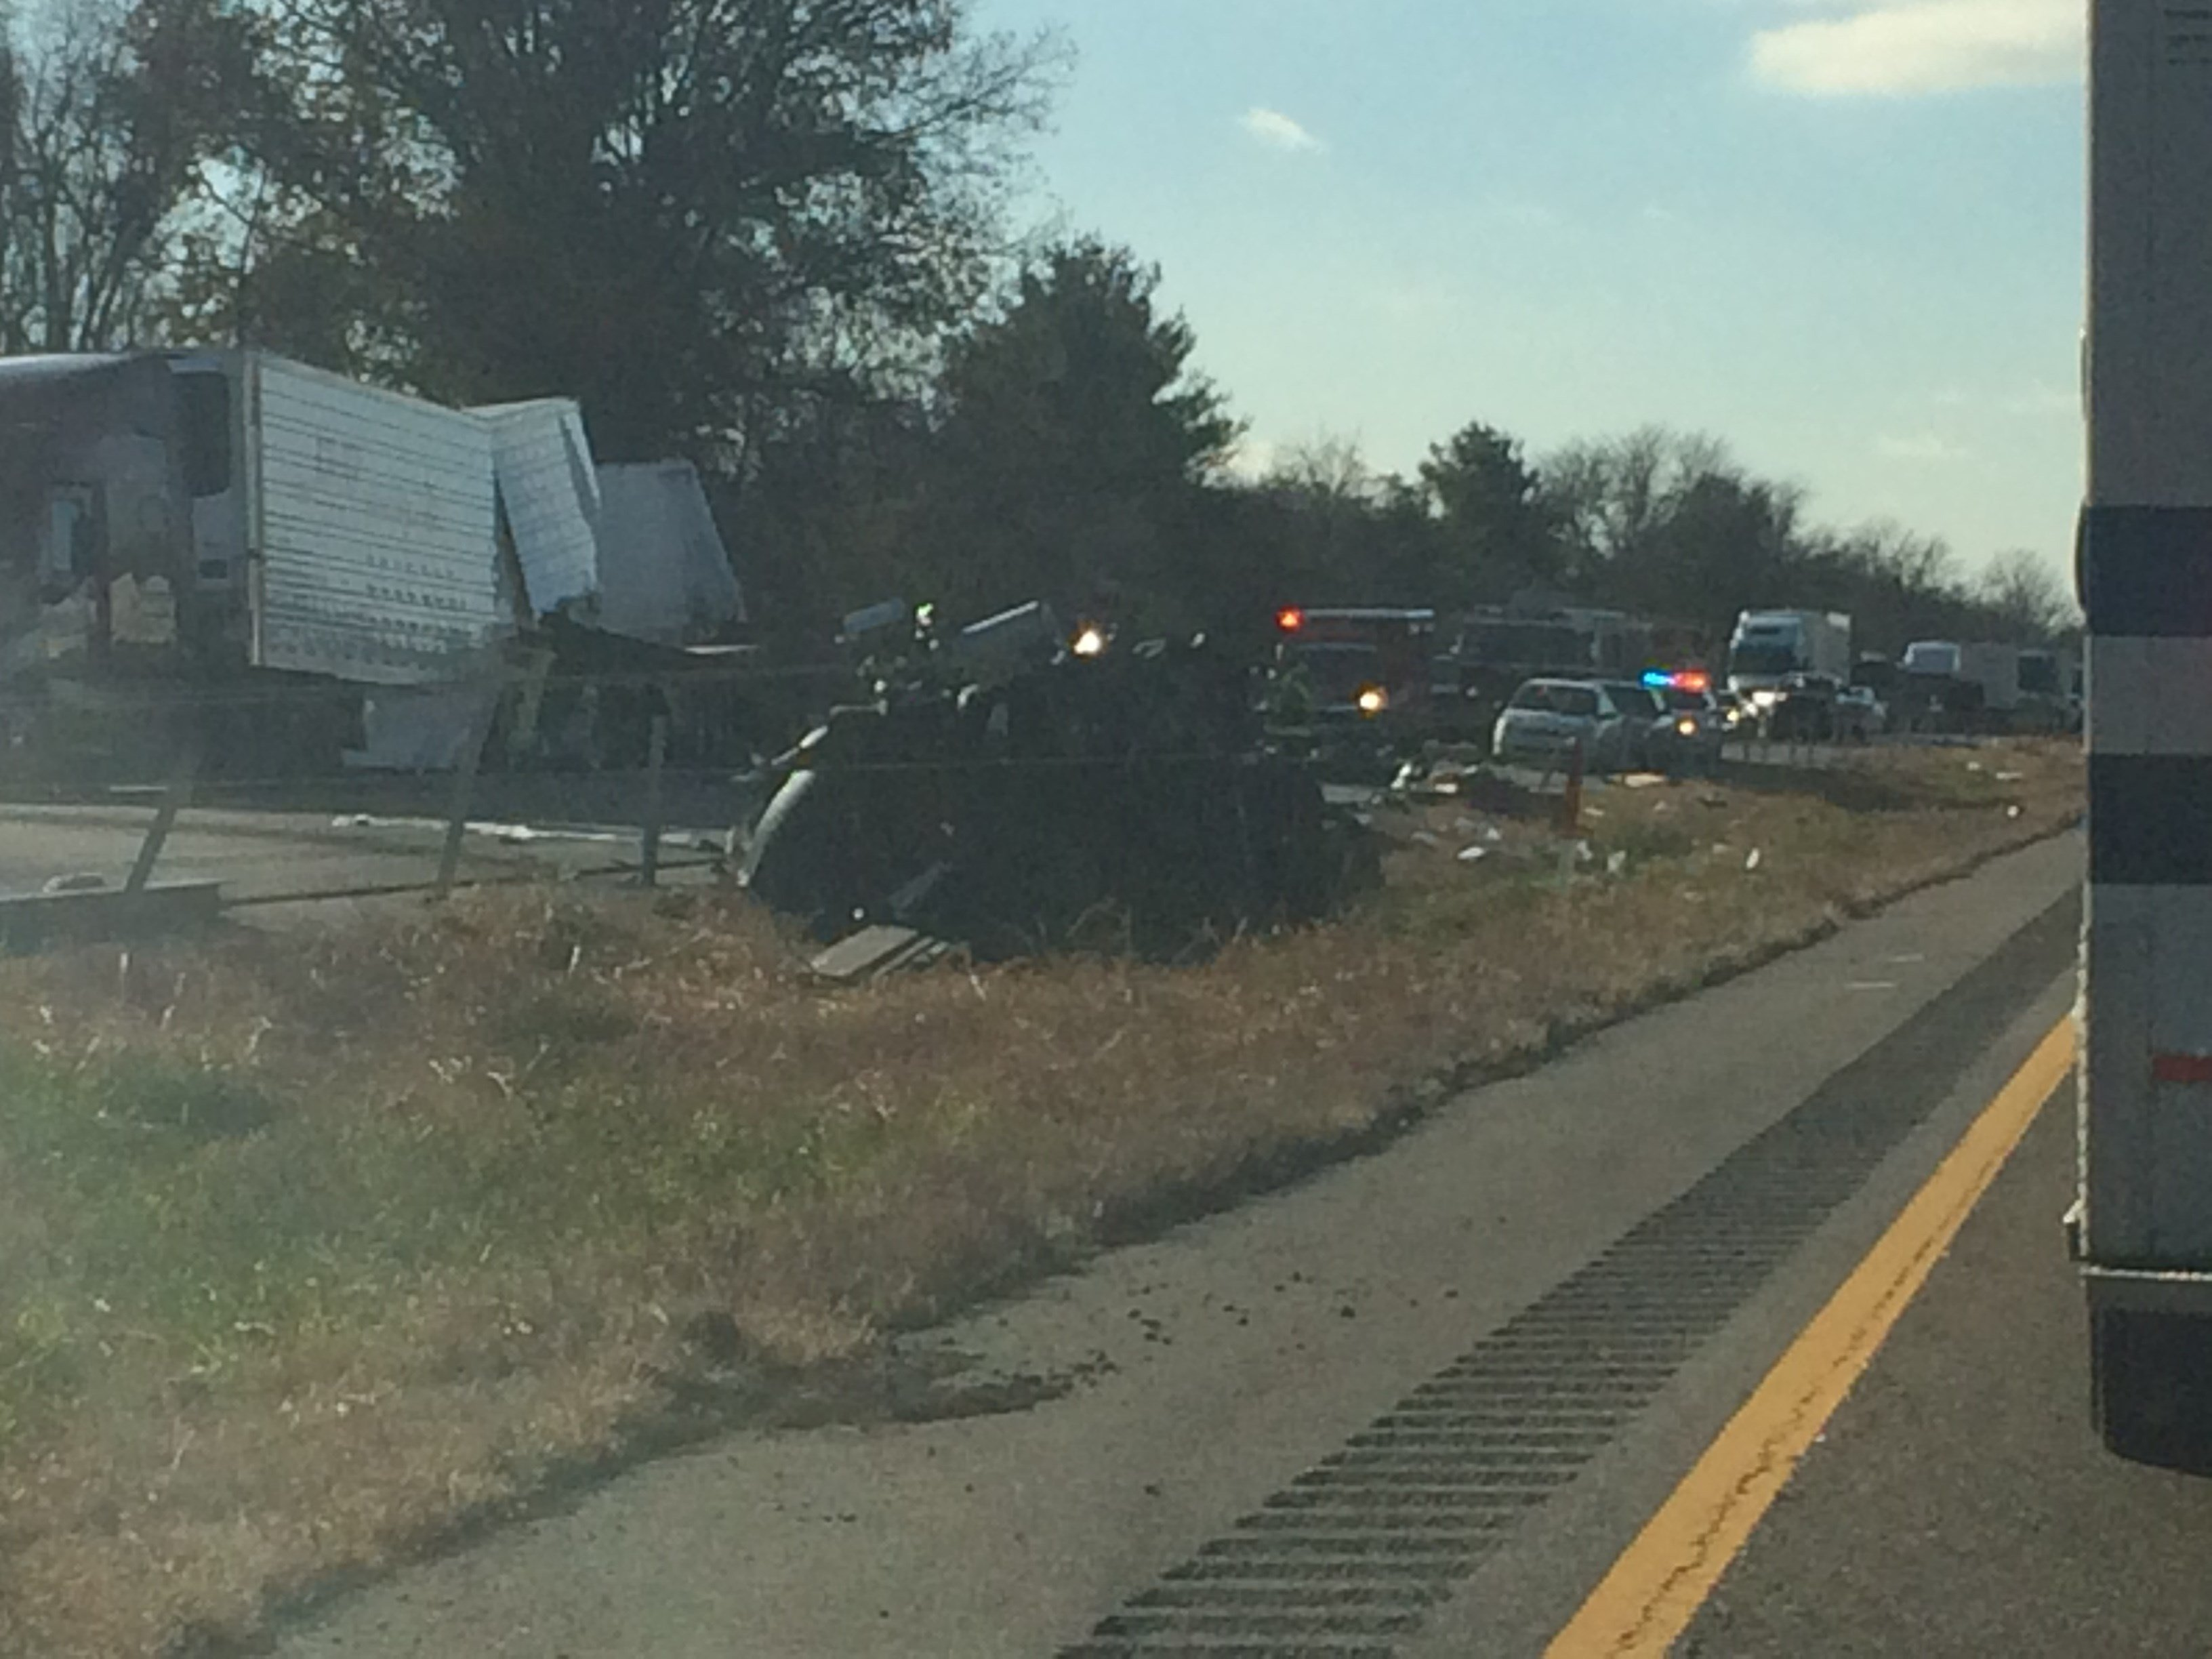 Eastbound lanes of Interstate 55/70 are blocked near Exit 15 in Maryville, Illinois due to a crash, according to IDOT. (Lauren Pozen, KMOV)